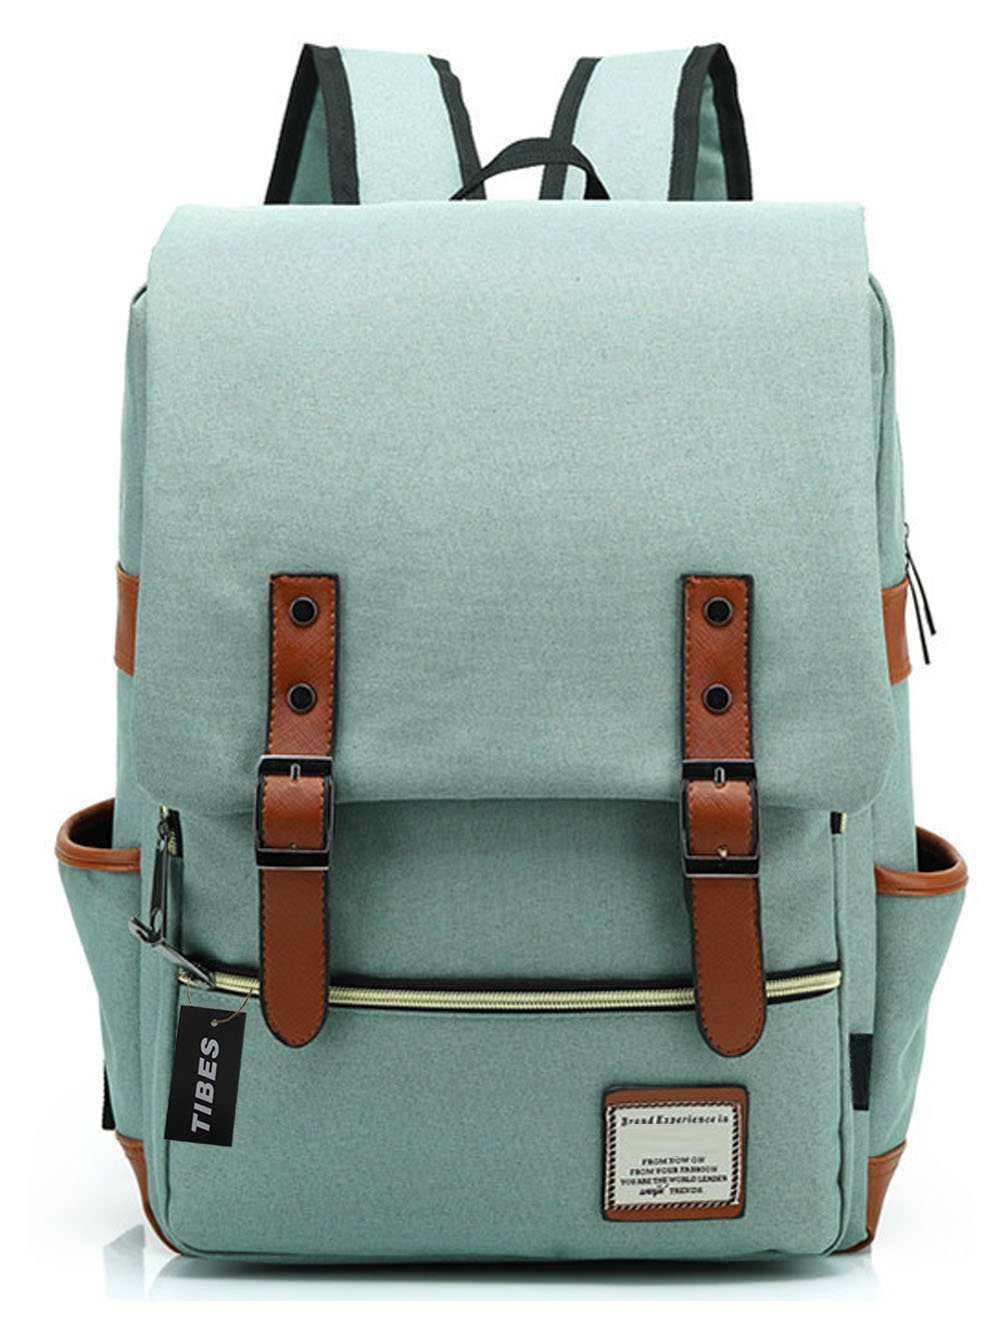 Tibes Cool Style Daypack School Backpack Oxford Fabric Backpack for High School/College Student Light Green 111beibao41-qianlvse